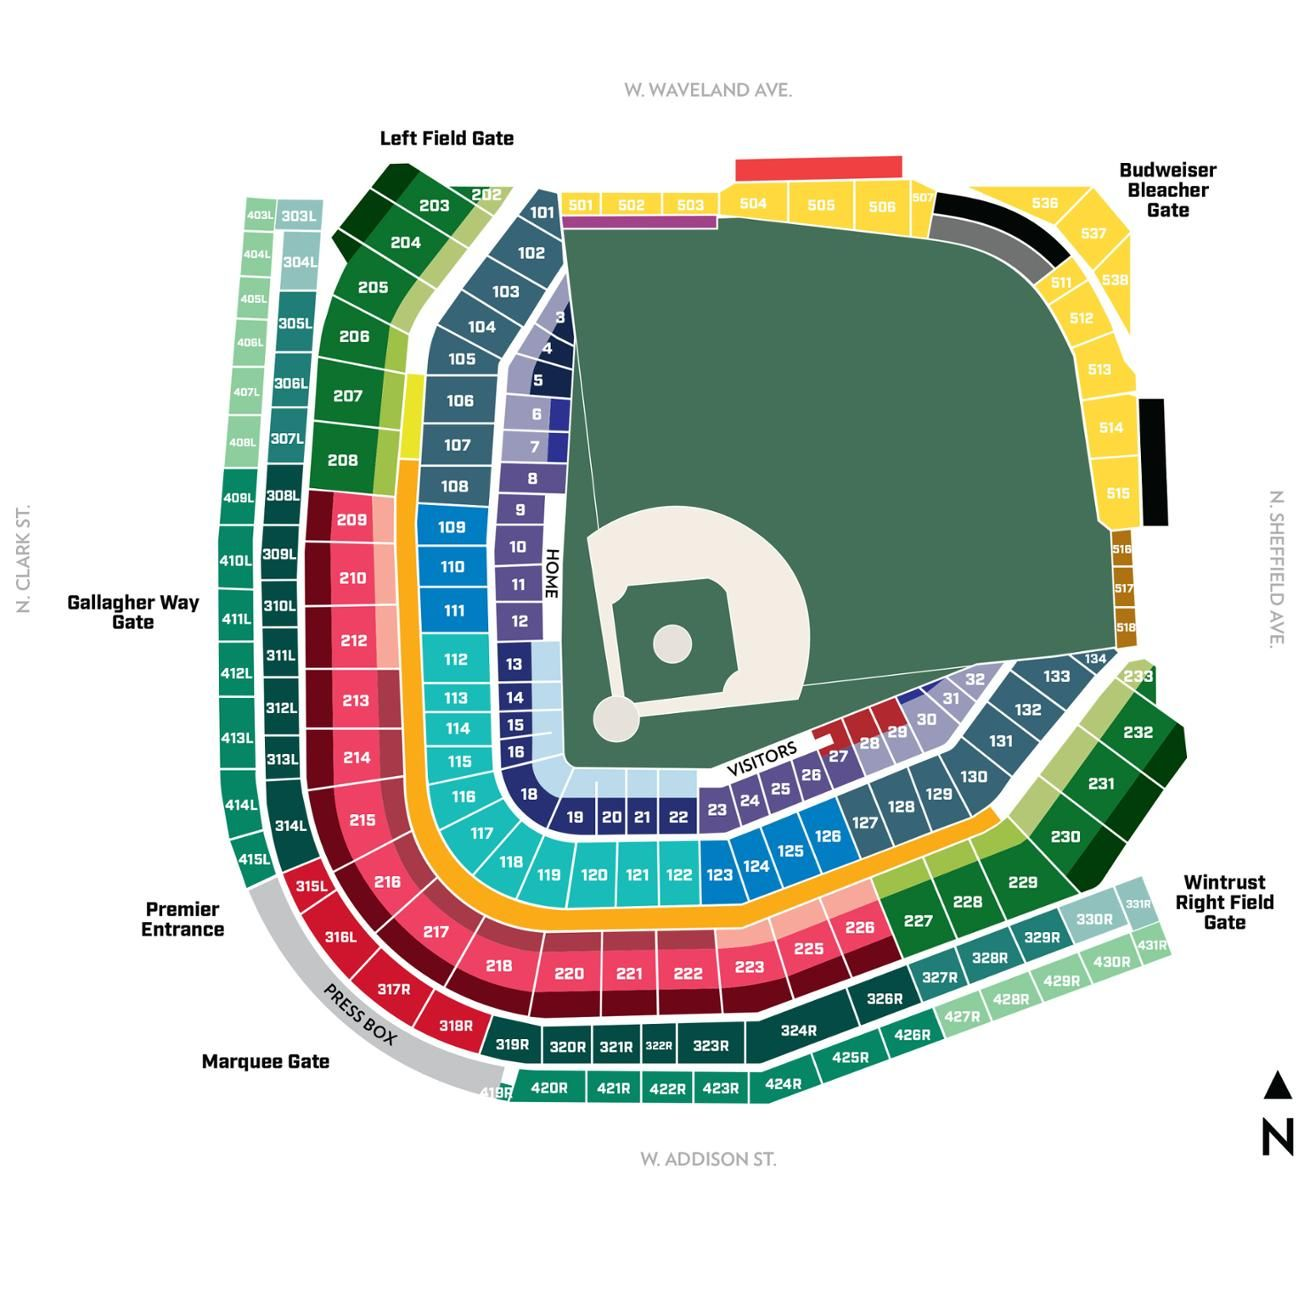 Wrigley Field Seating Chart, Chicago Cubs